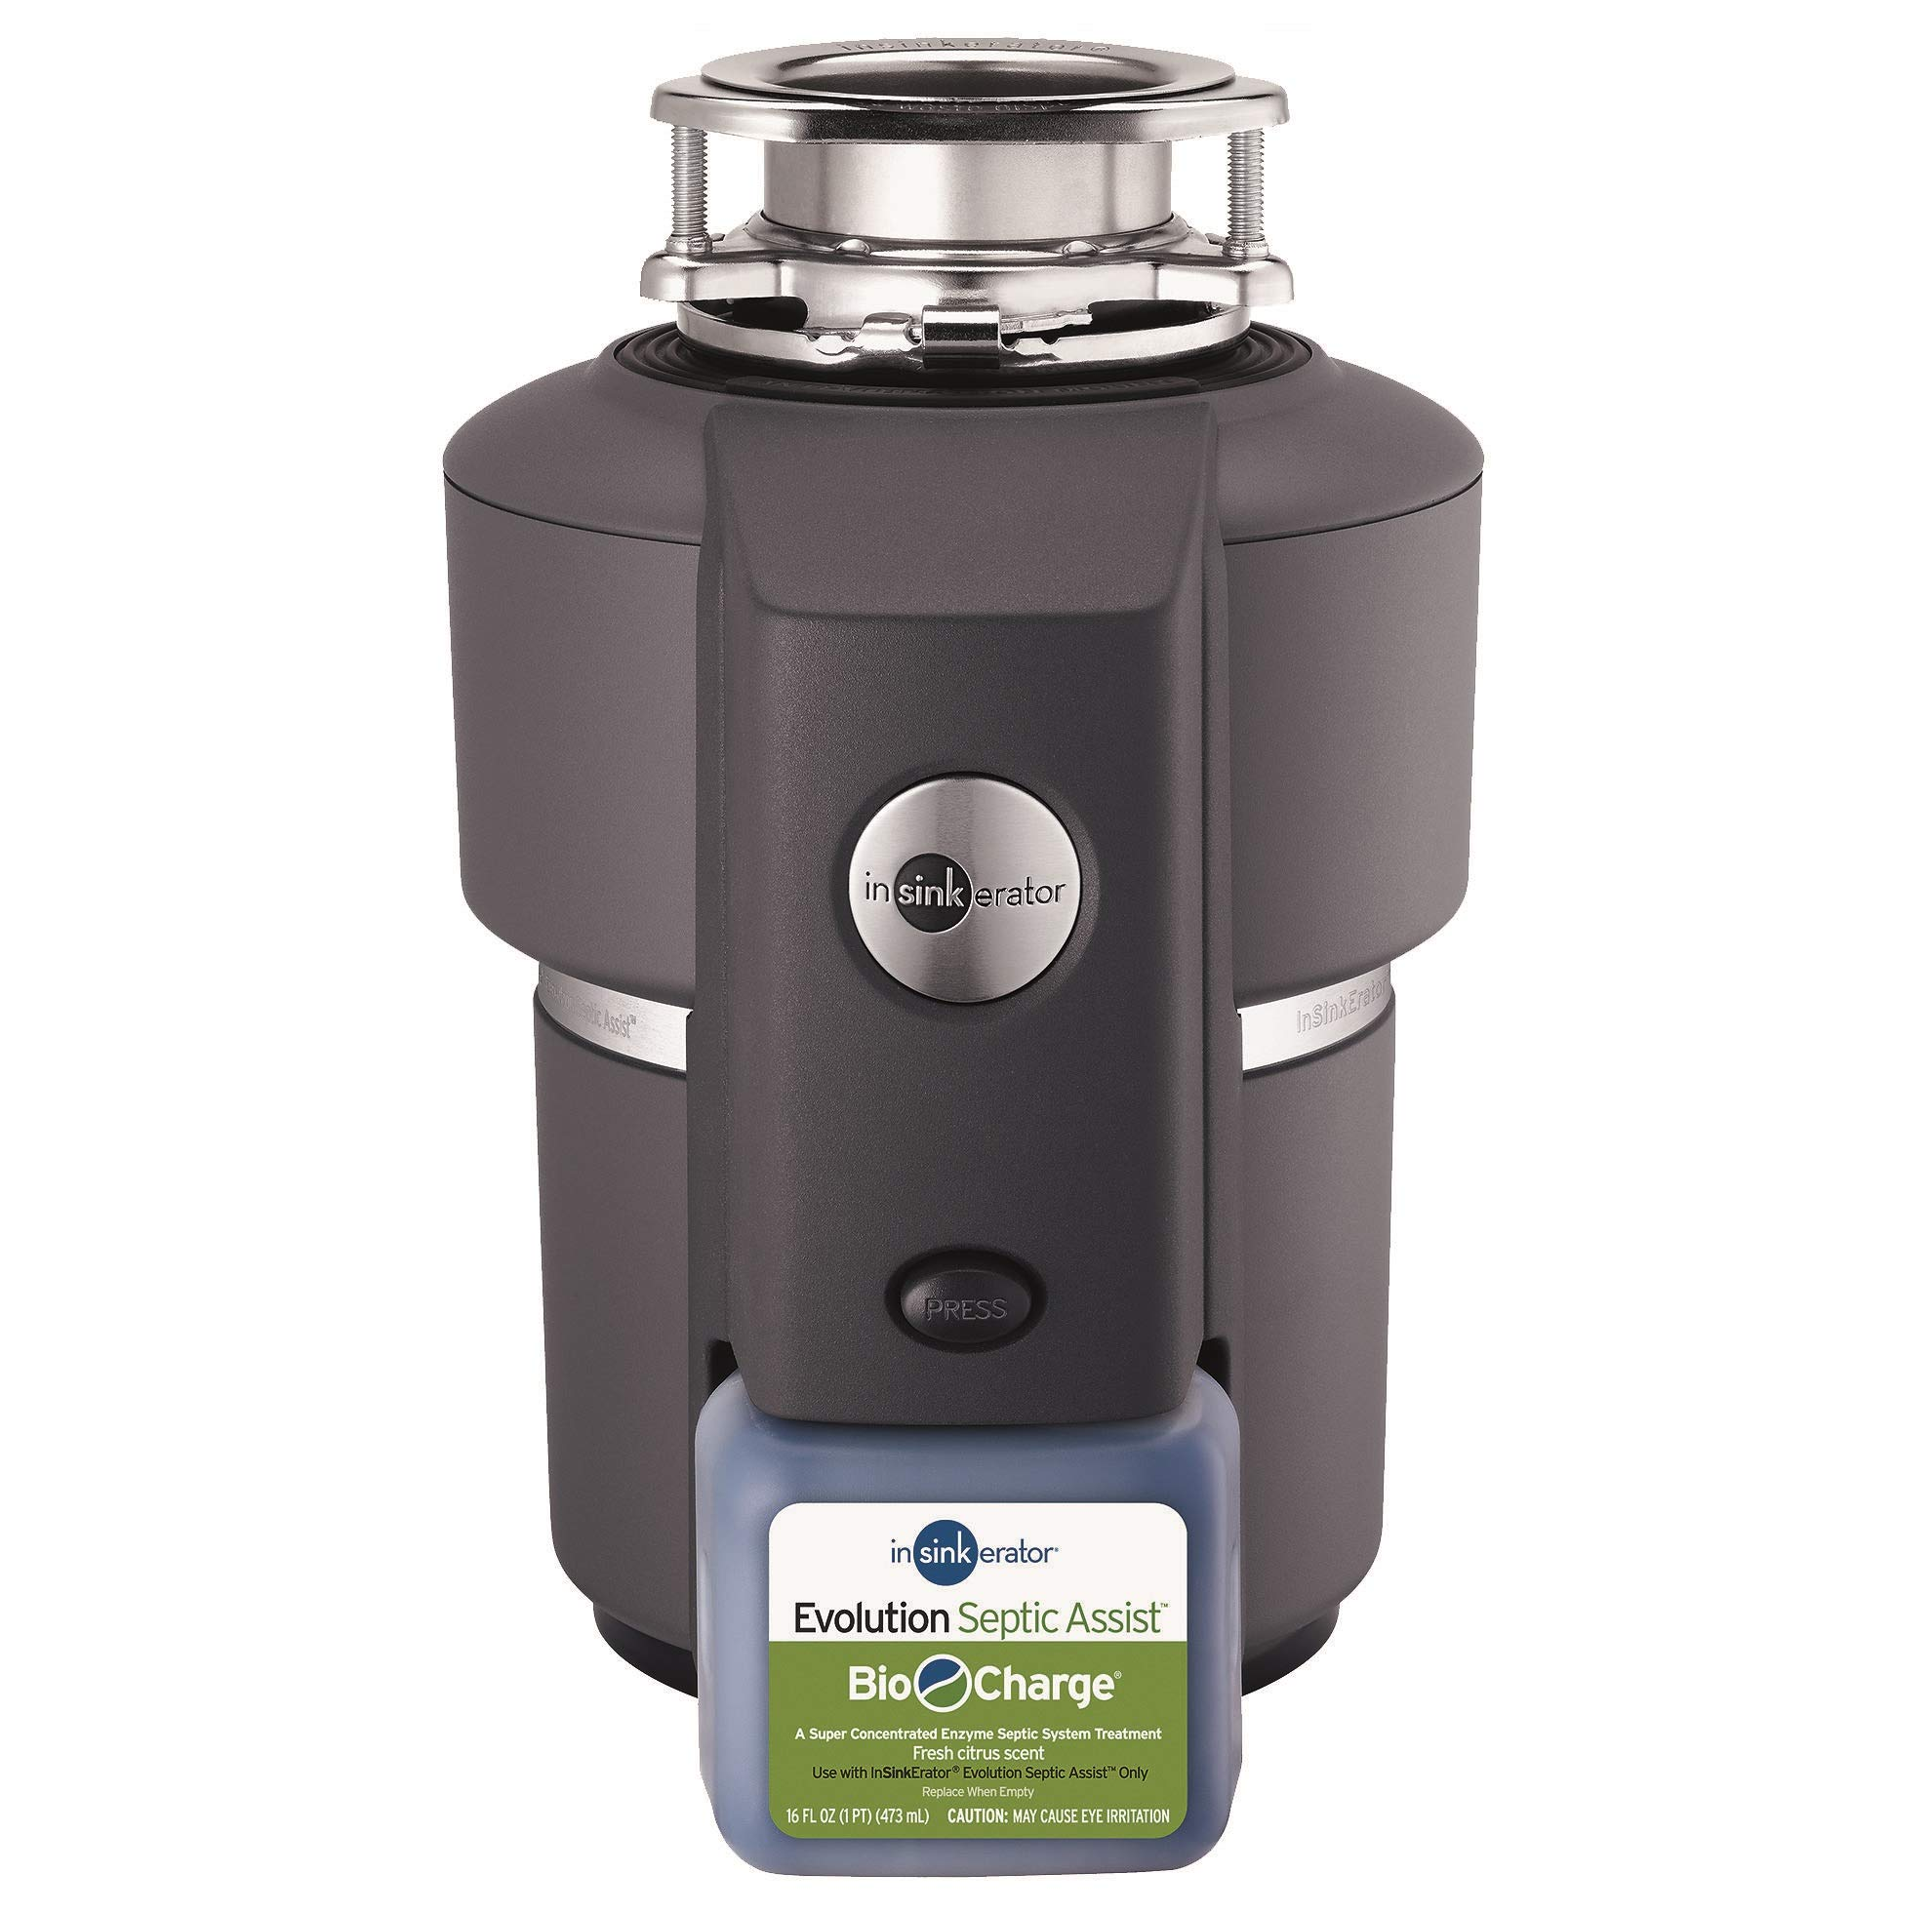 InSinkErator Garbage Disposal, Evolution Septic Assist, 3/4 HP Continuous Feed by InSinkErator